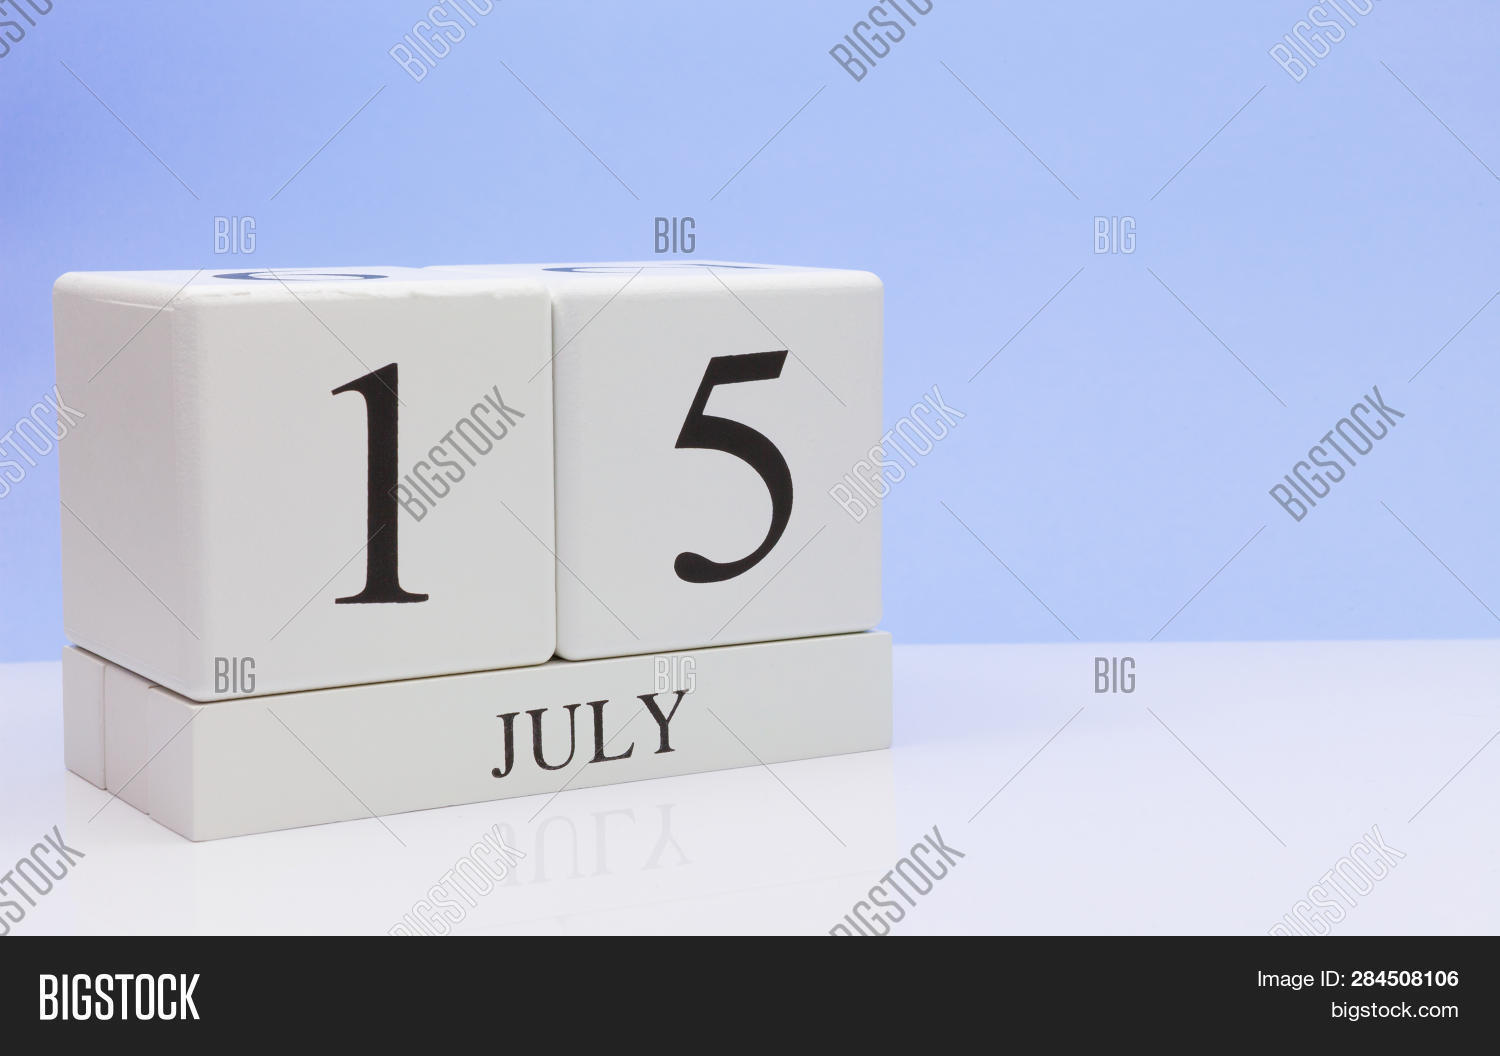 15,2019,agenda,appointment,background,blank,book,business,calendar,calender,closeup,date,day,deadline,design,desk,diary,document,event,glass,holiday,hour,is,july,losing,meeting,memo,minimal,money,month,number,office,organiser,page,personal,plan,planner,planning,reminder,schedule,space,table,time,today,top,week,white,wood,written,year